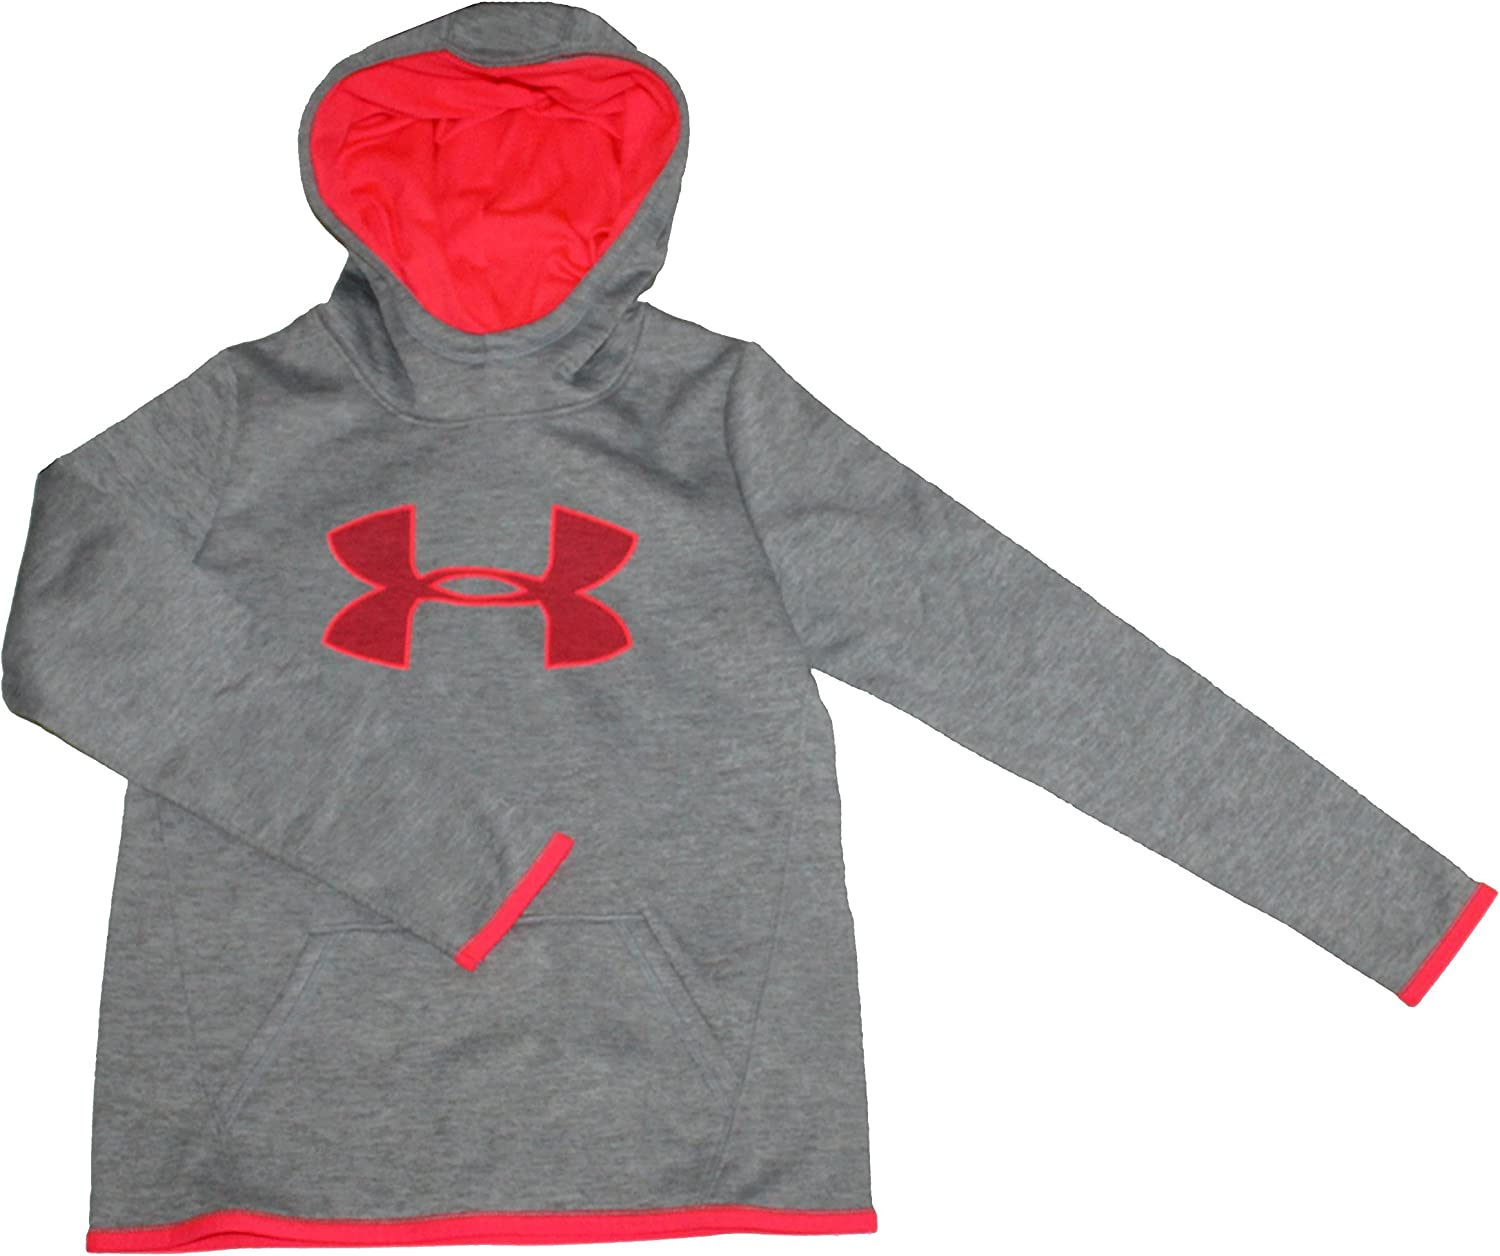 Under Armour Girls Youth Gray & Pink Athletic Storm Fleece Lined Hoodie (X-Large)